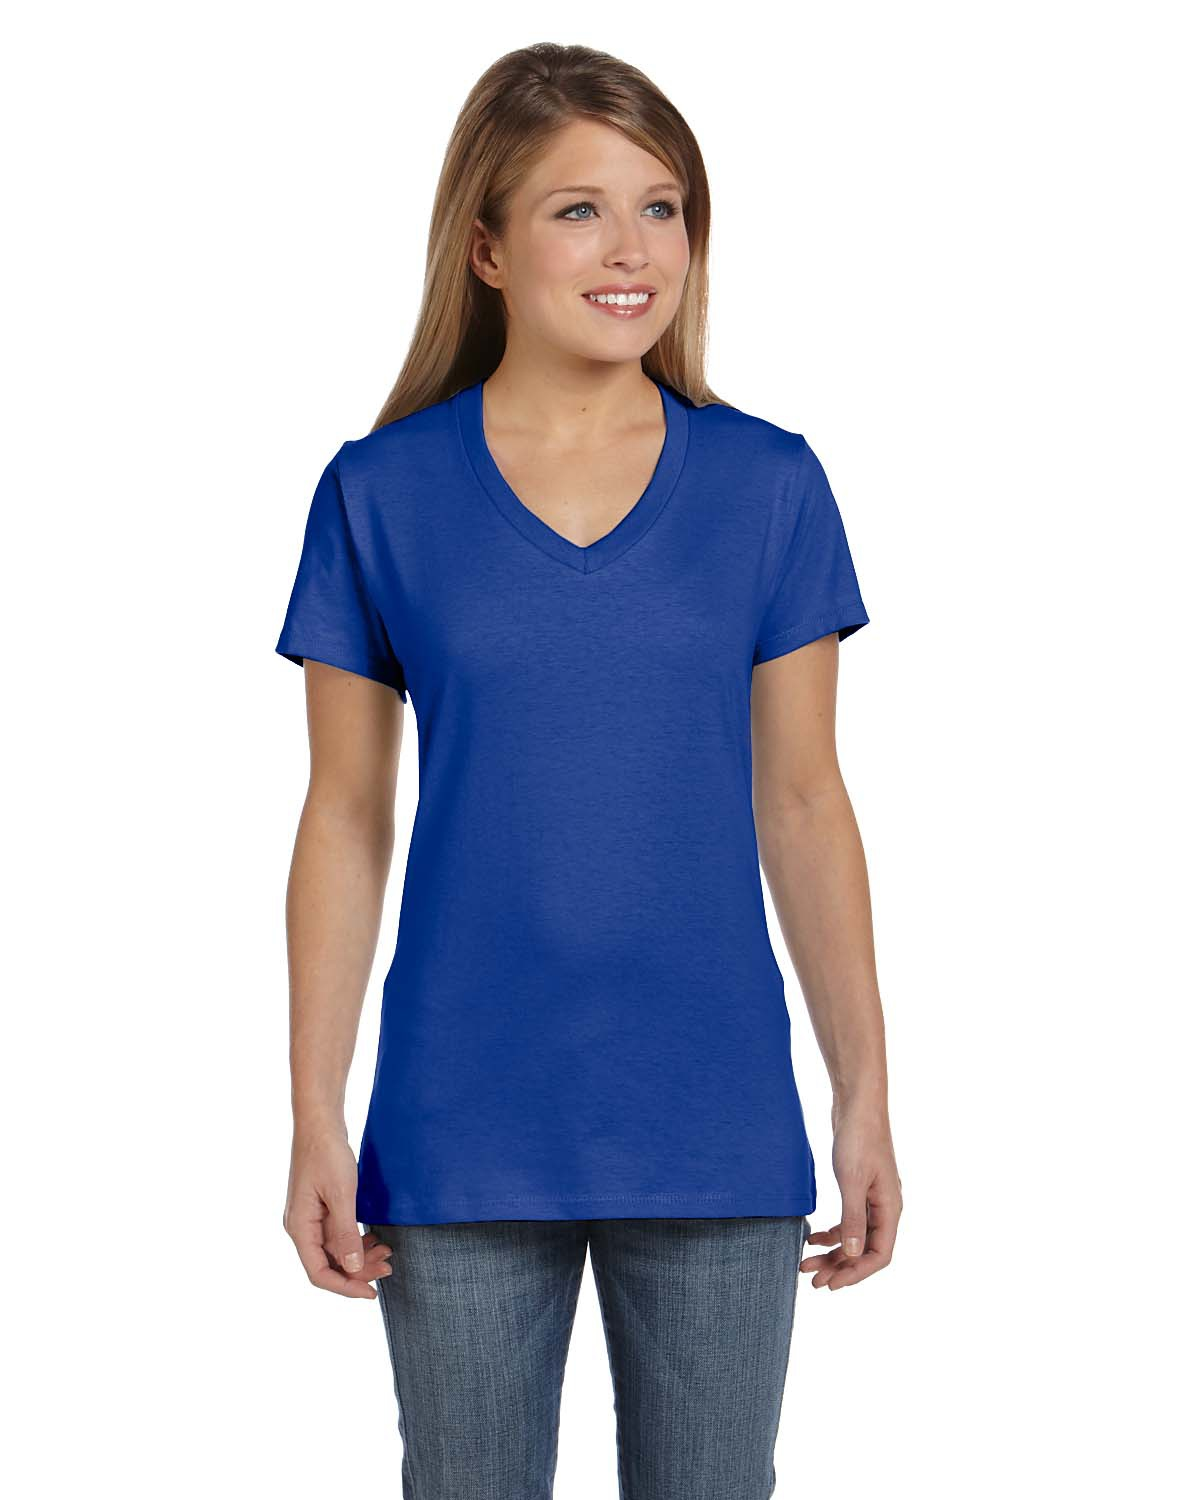 'Hanes S04V Ladies' Ringspun Cotton nano-T V-Neck T-Shirt'